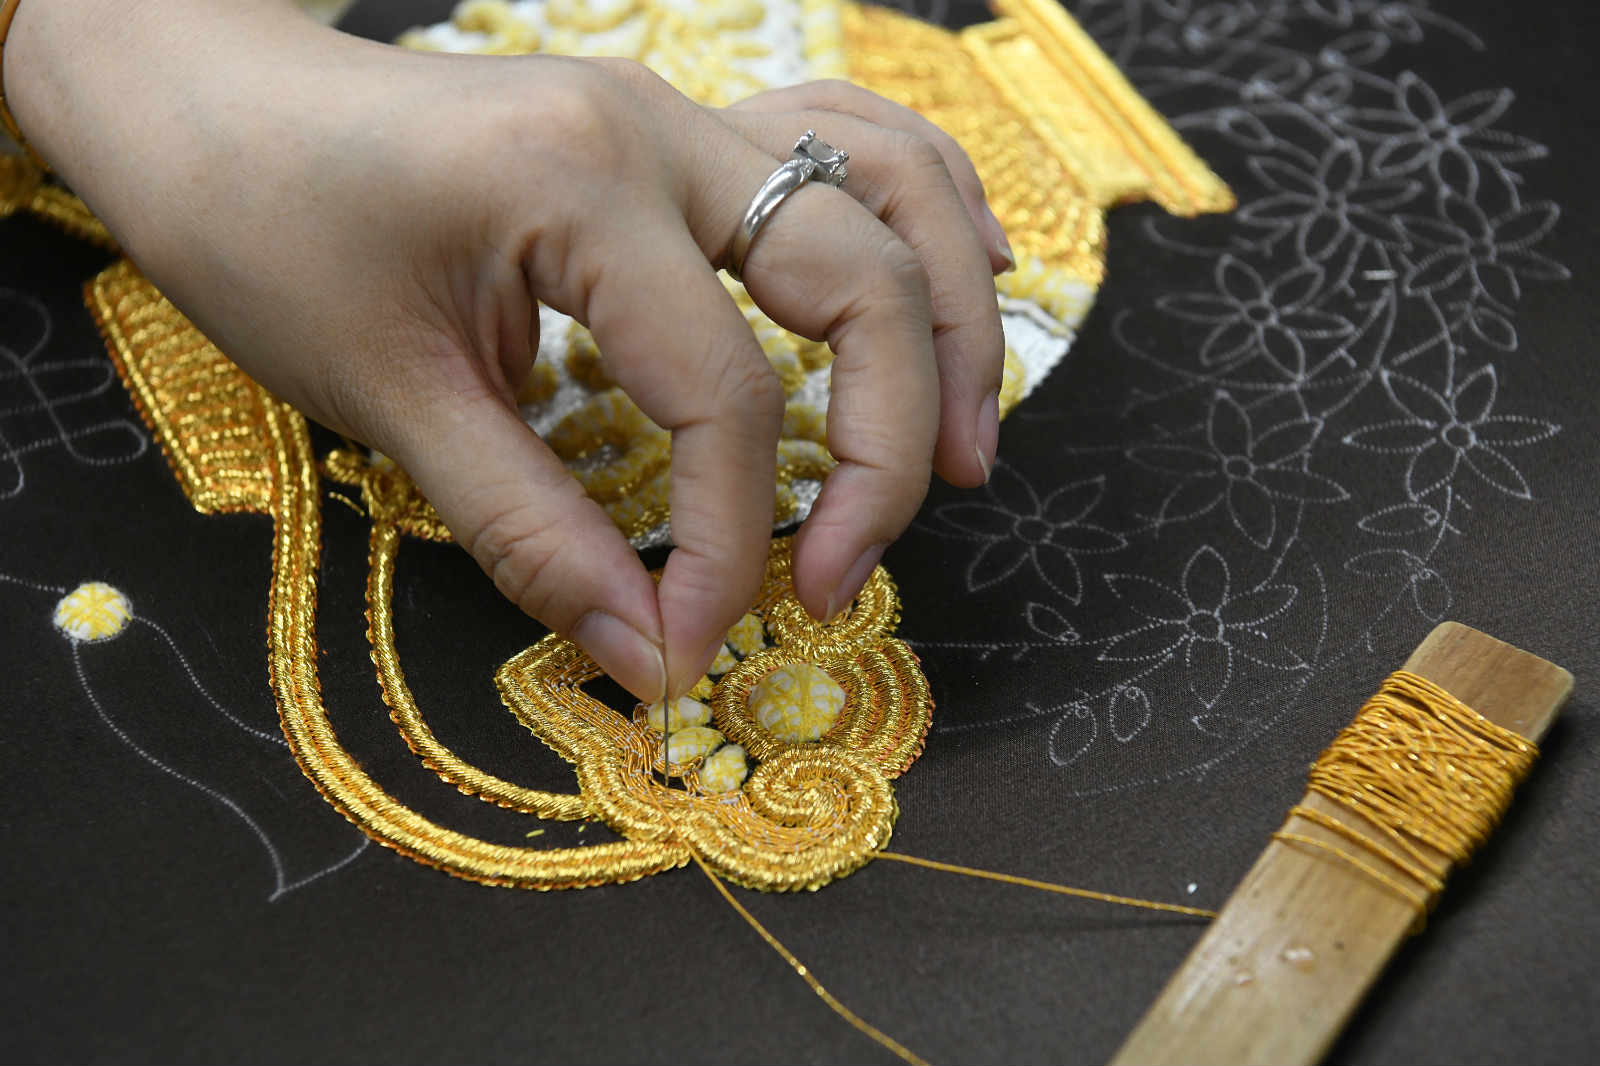 She Keyan, the official heir to the national heritage of Chao Embroidery, works on a piece of Chao Embroidery at her workshop in Chaozhou, south China